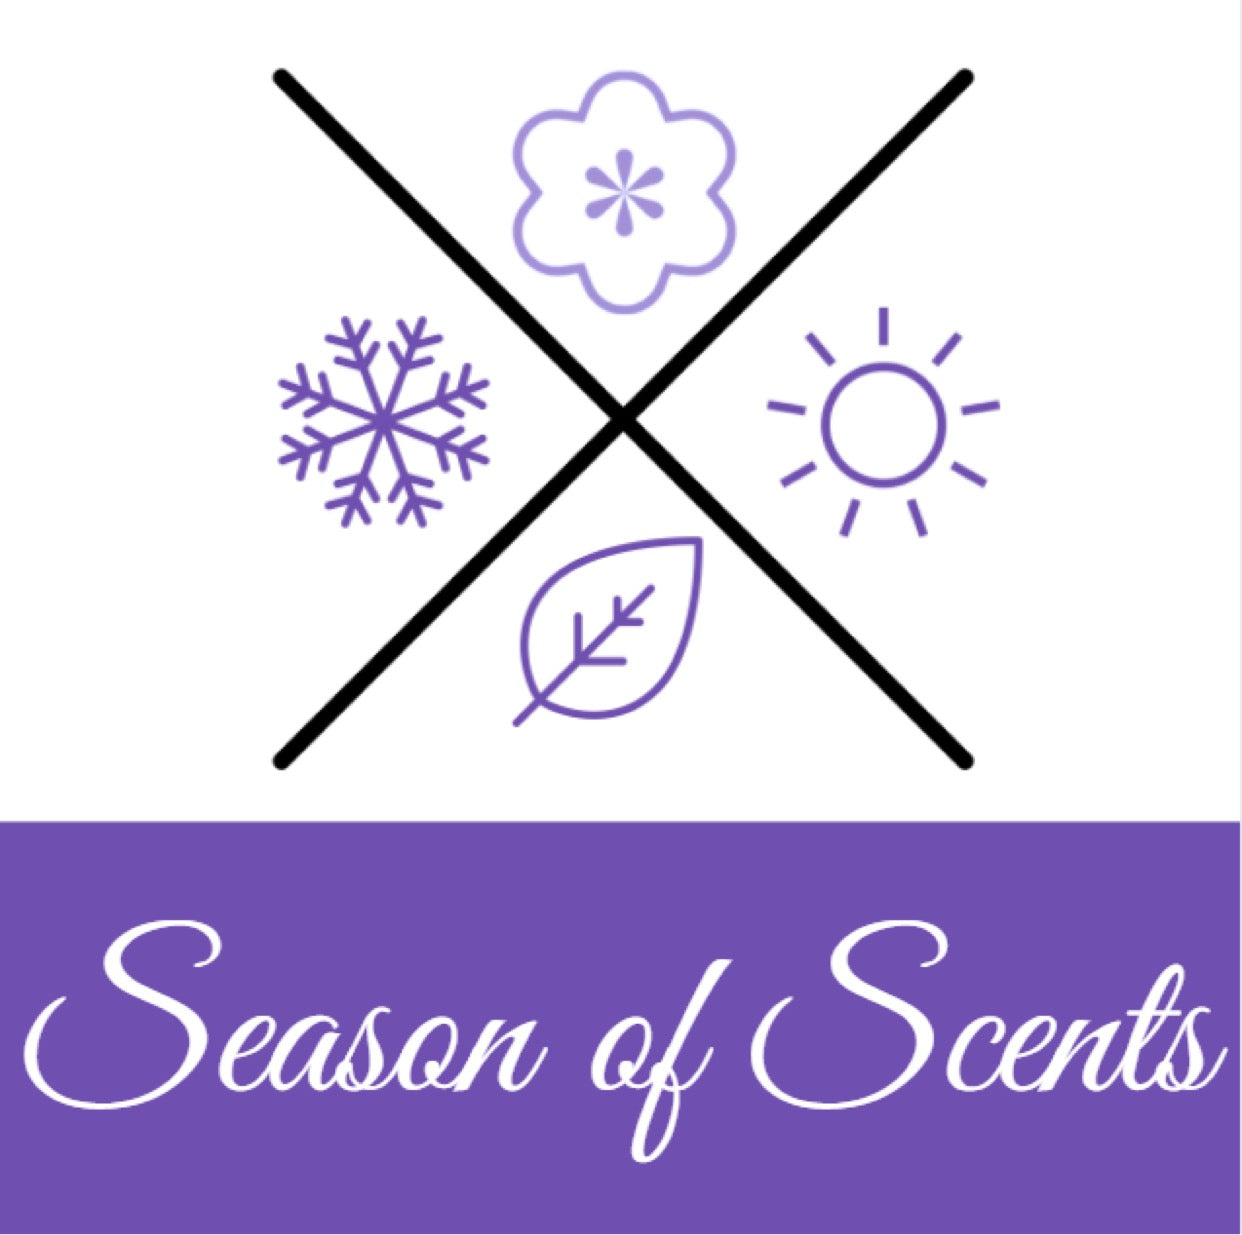 Season of Scents Spa Box Surprise (3 seasons) summer, fall, winter